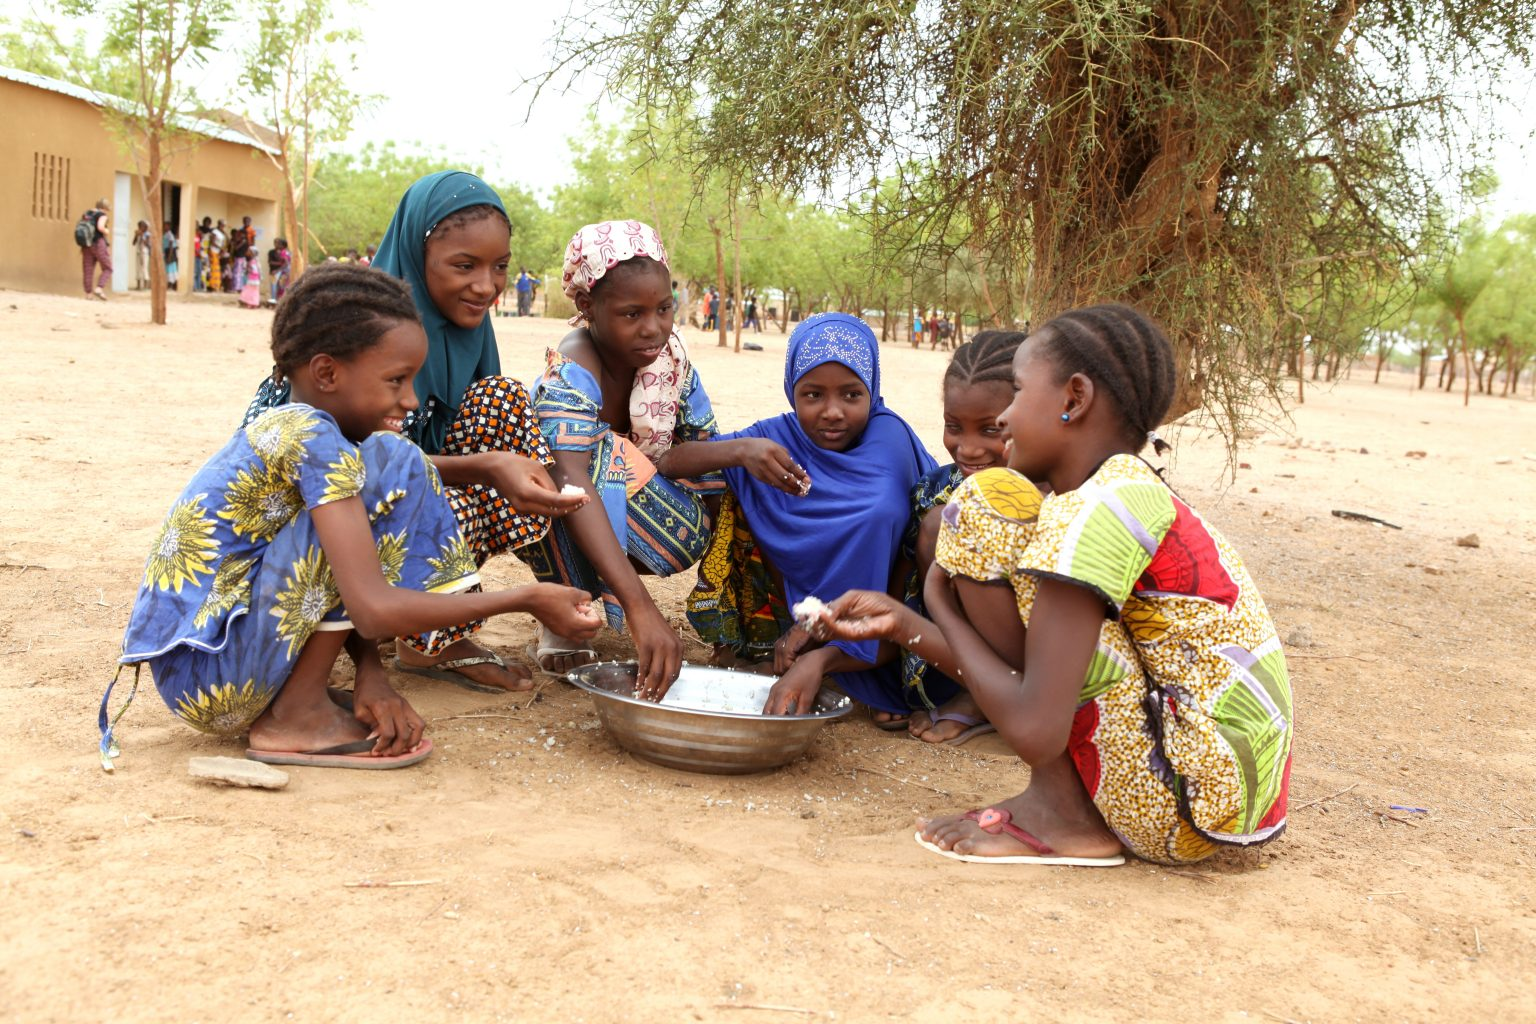 A group of girls sits on the ground, eating and chatting over a shared bowl of food